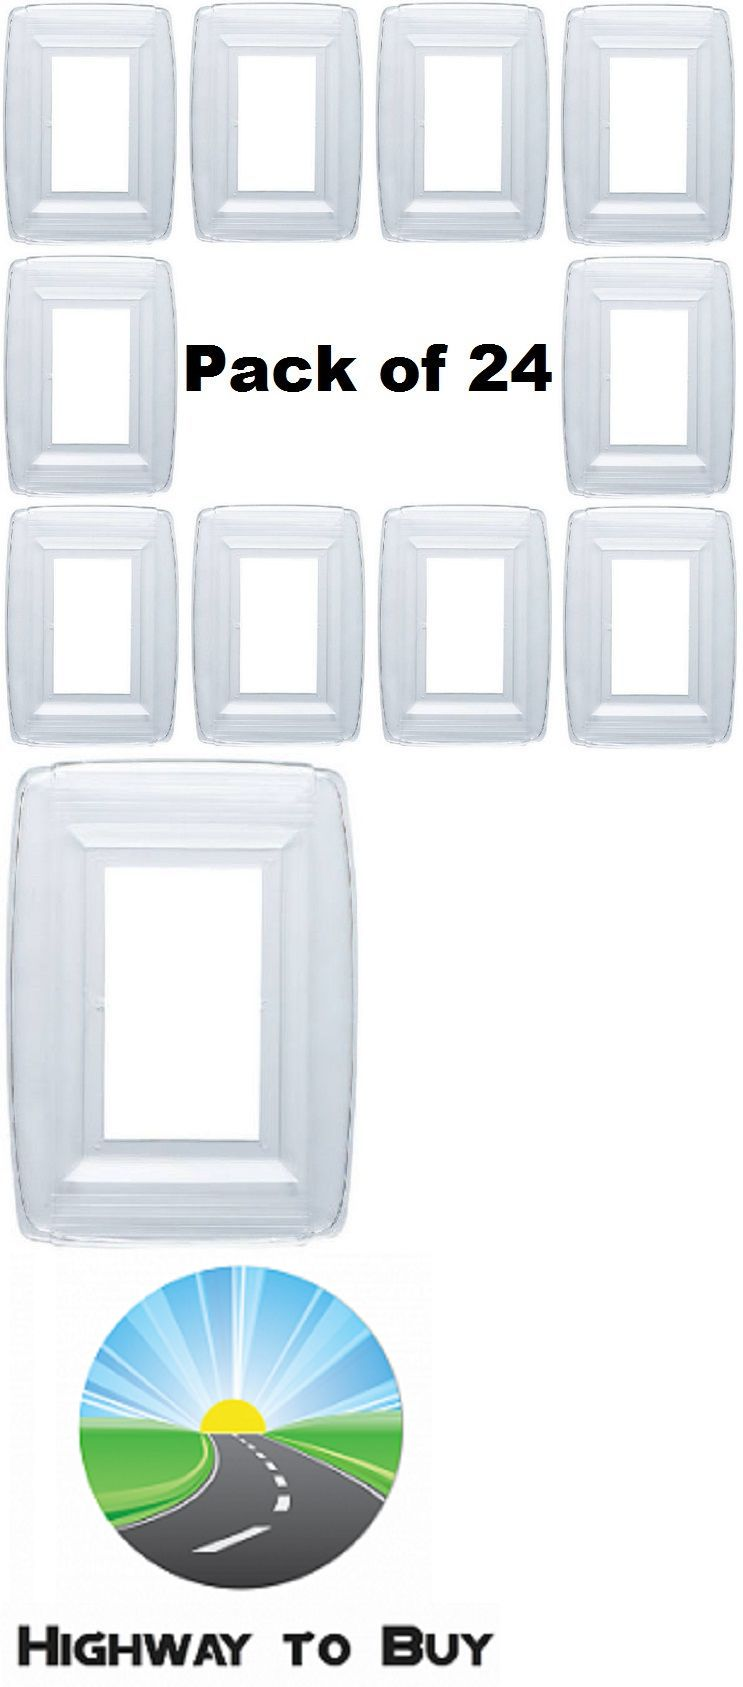 Plastic Light Switch Covers Switch Plates And Outlet Covers 43412 24 Westinghouse 74998